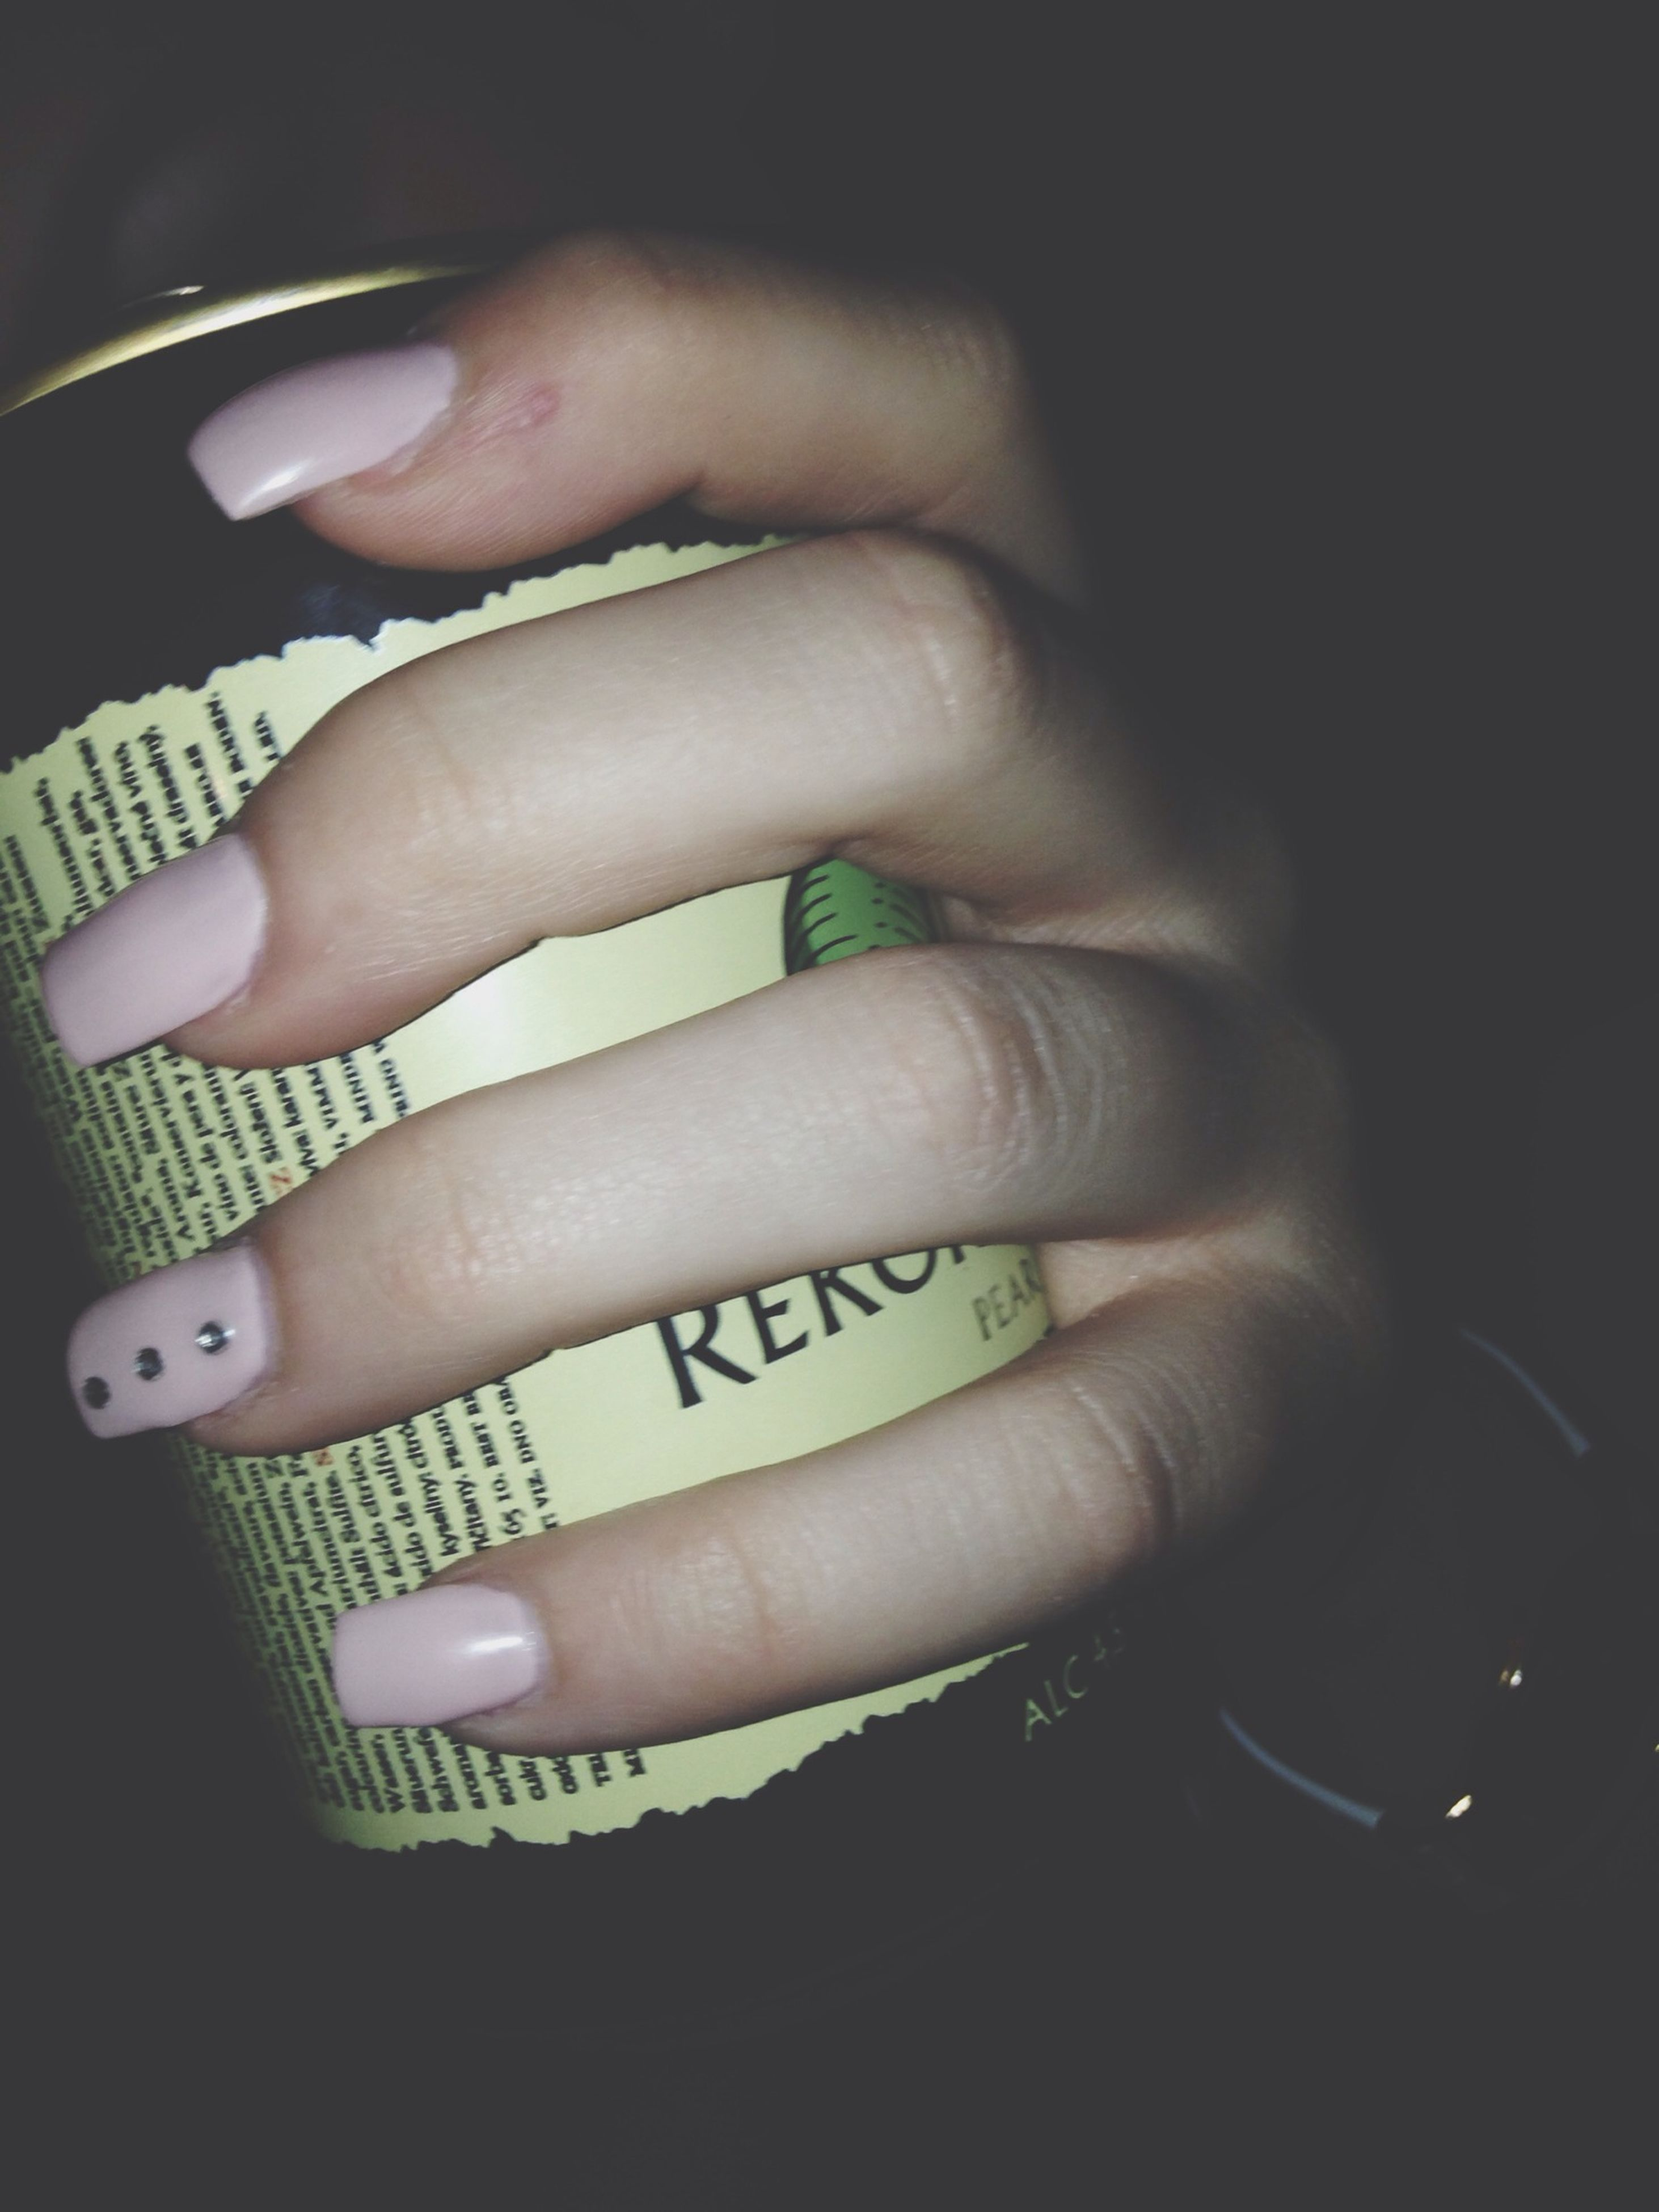 person, indoors, part of, human finger, close-up, cropped, holding, lifestyles, studio shot, black background, unrecognizable person, ring, showing, high angle view, leisure activity, nail polish